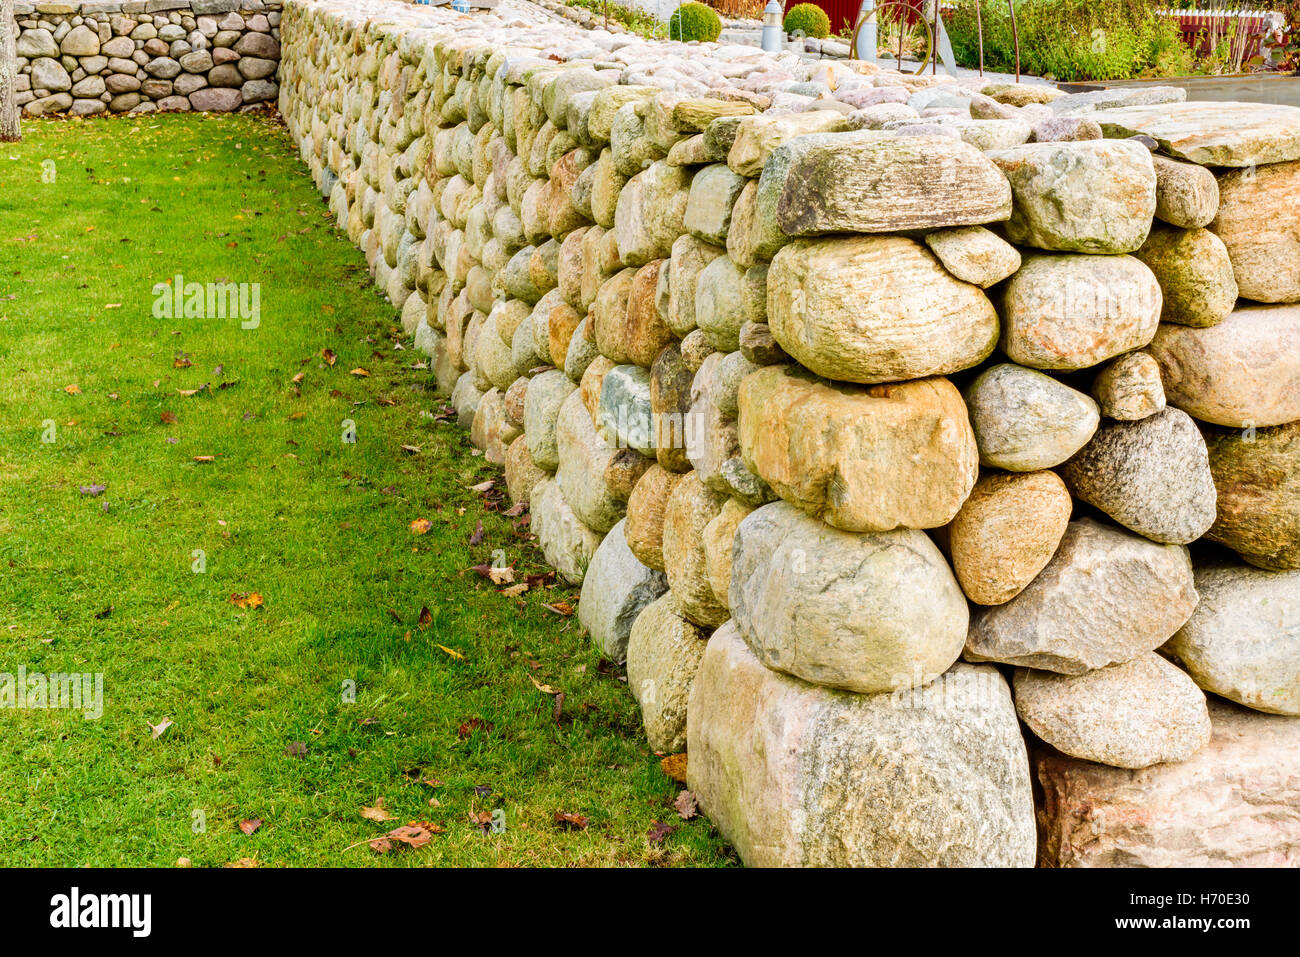 Smooth and well built stone wall with green grass on one side. - Stock Image